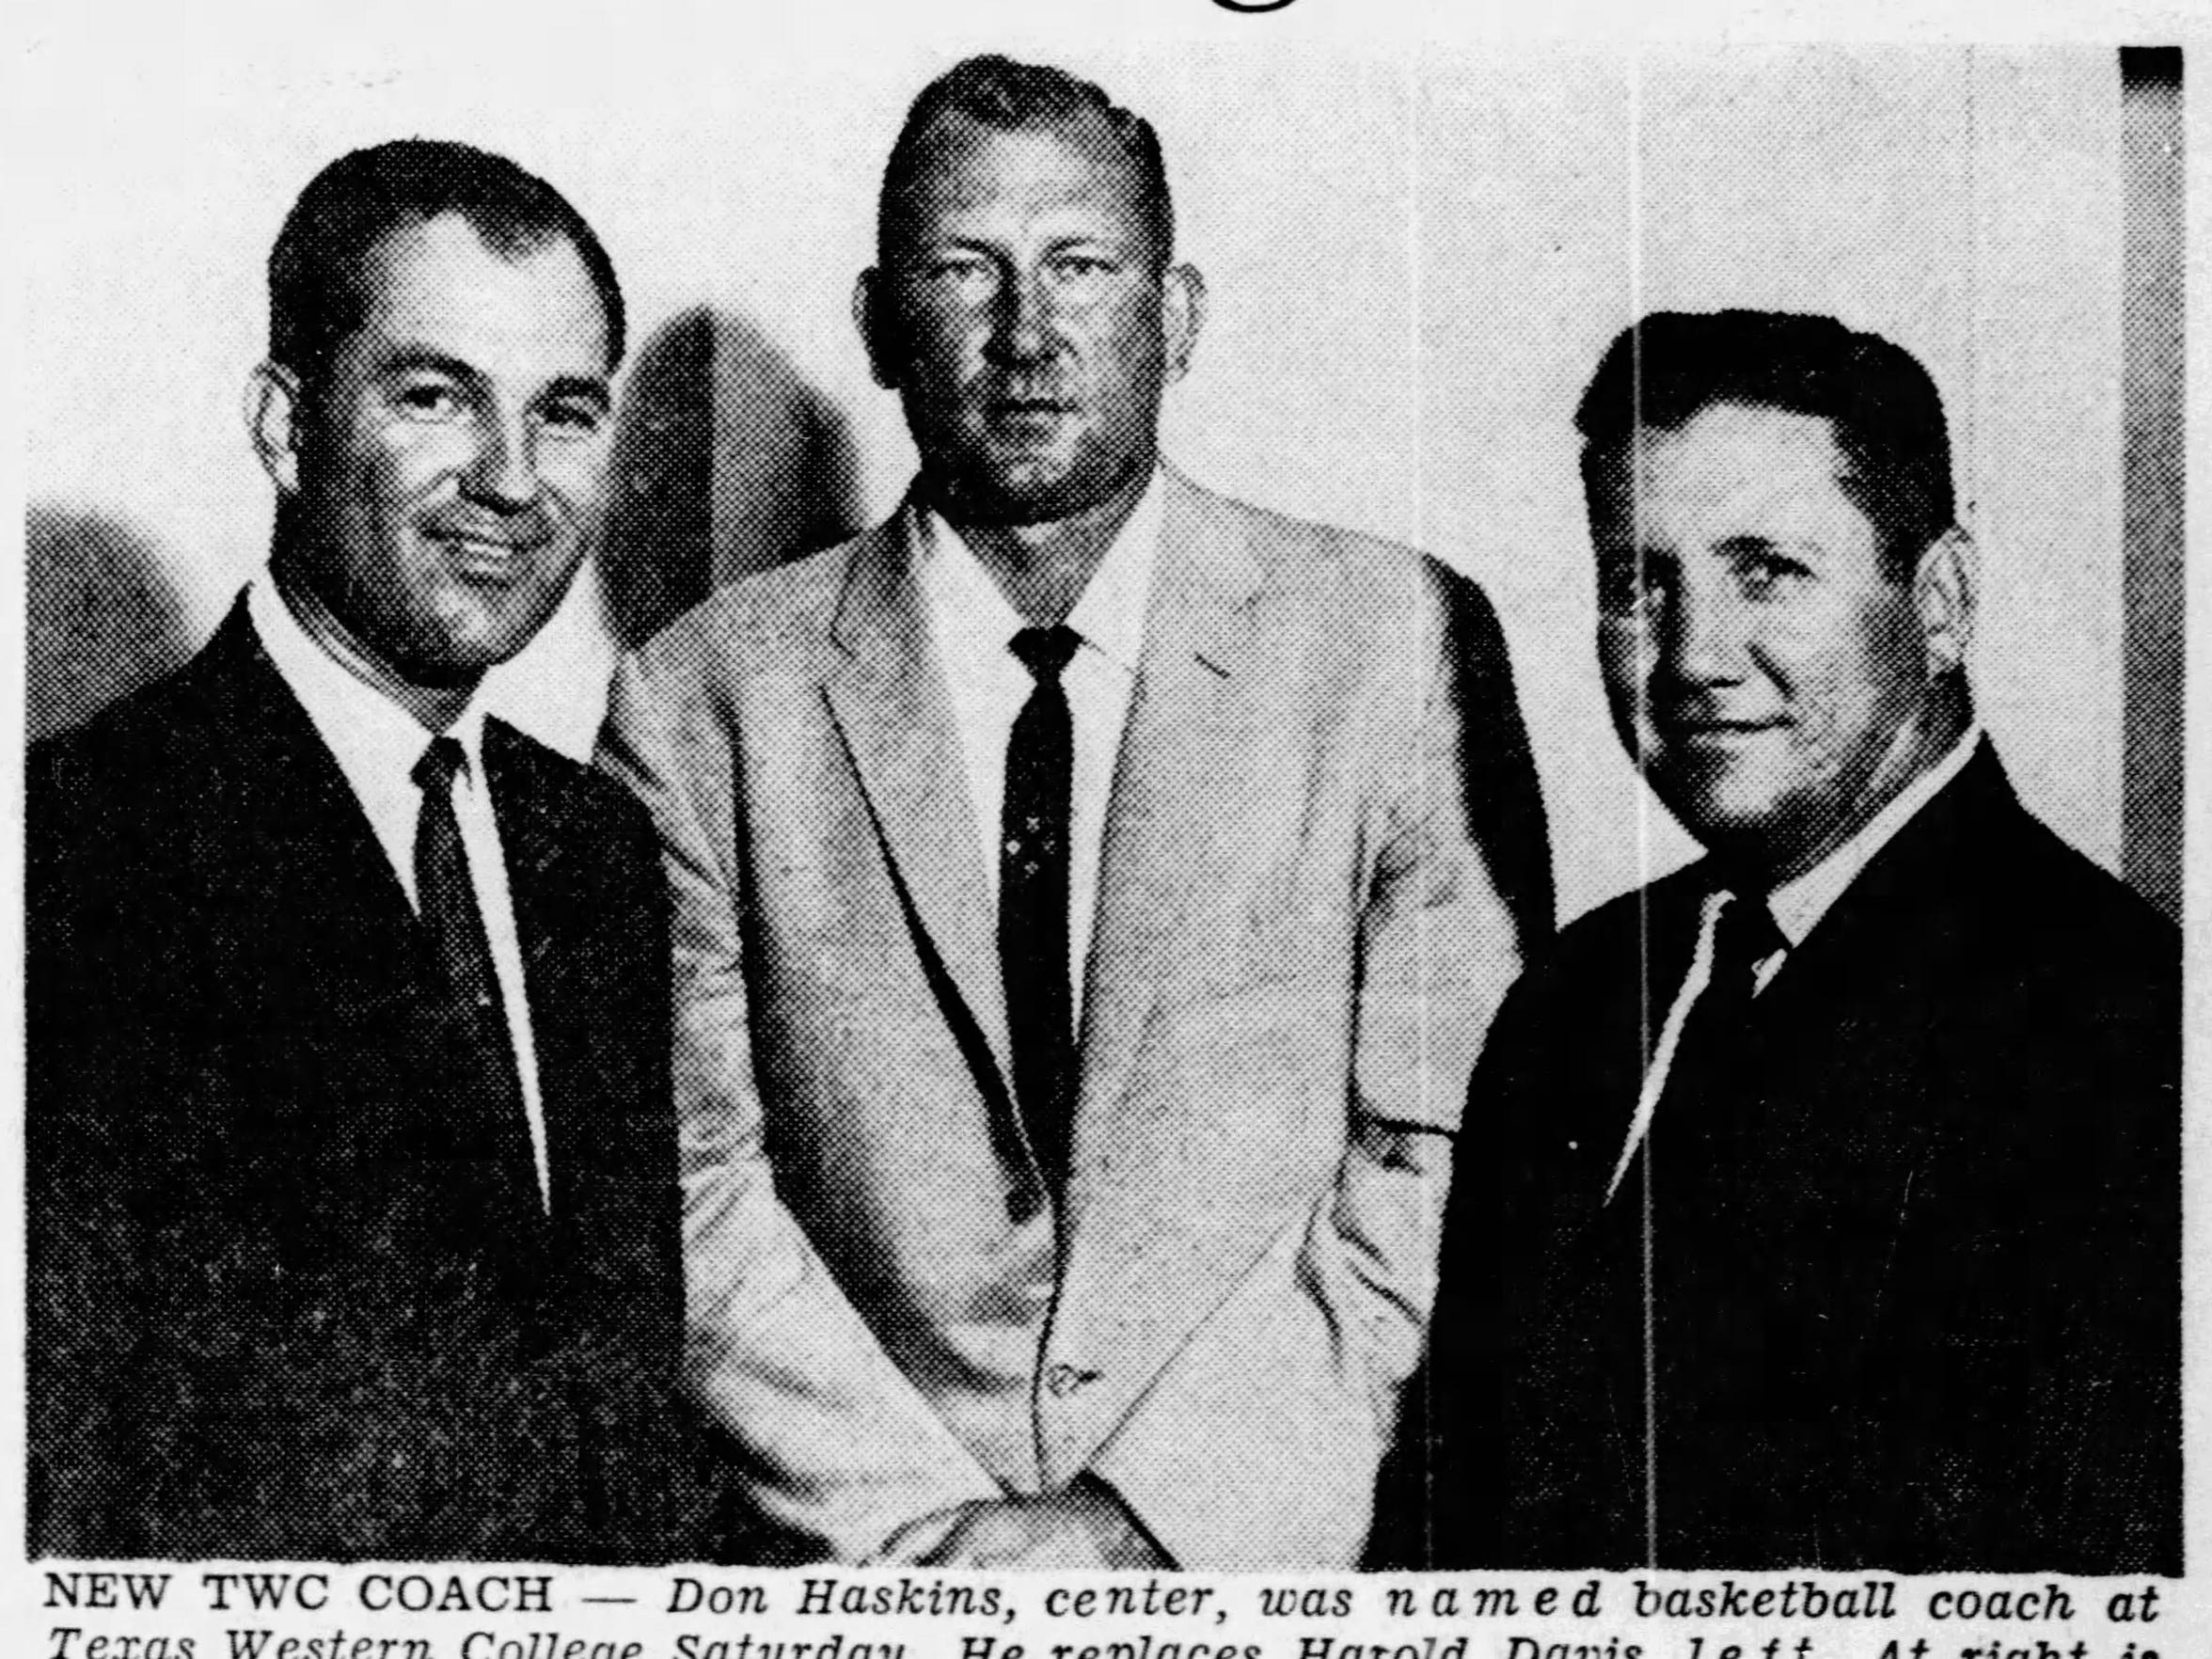 Harold Davis, from left, Don Haskins and Ben Collins.